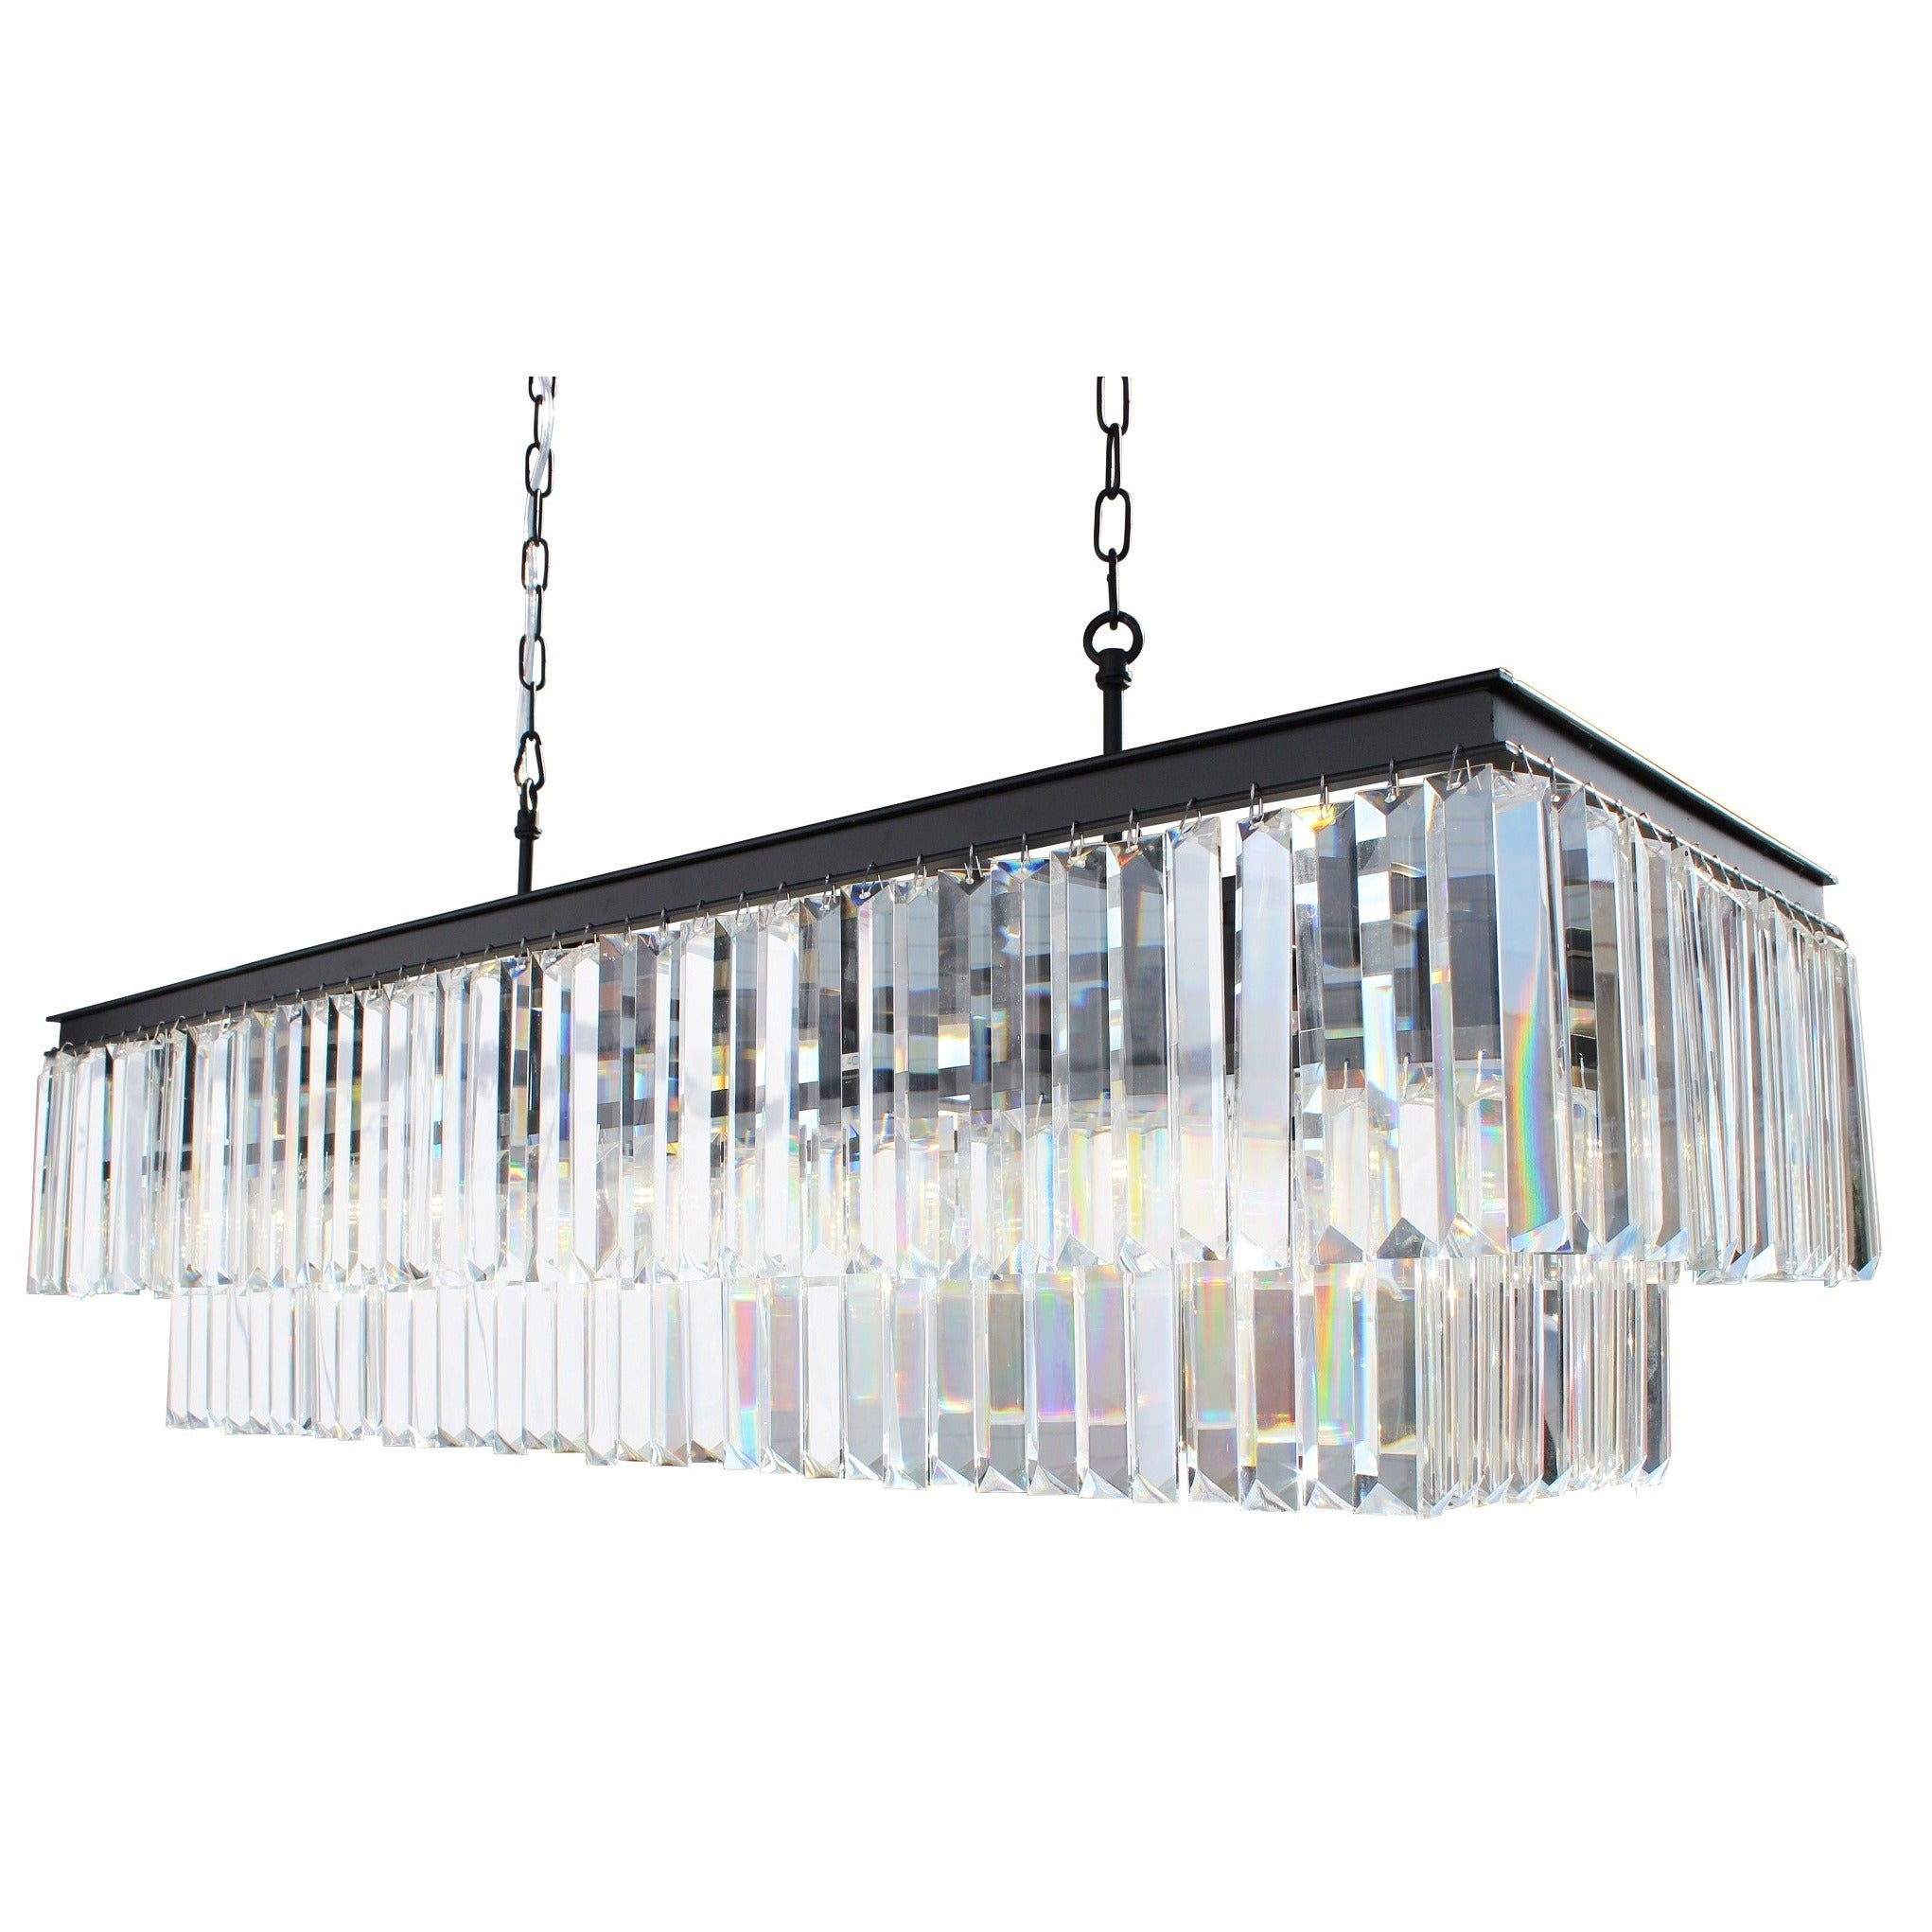 rectangle linear crystal lighting new intended ebay stylish chandelier throughout connection amazing ella com orleans fulczyk by for home rectangular